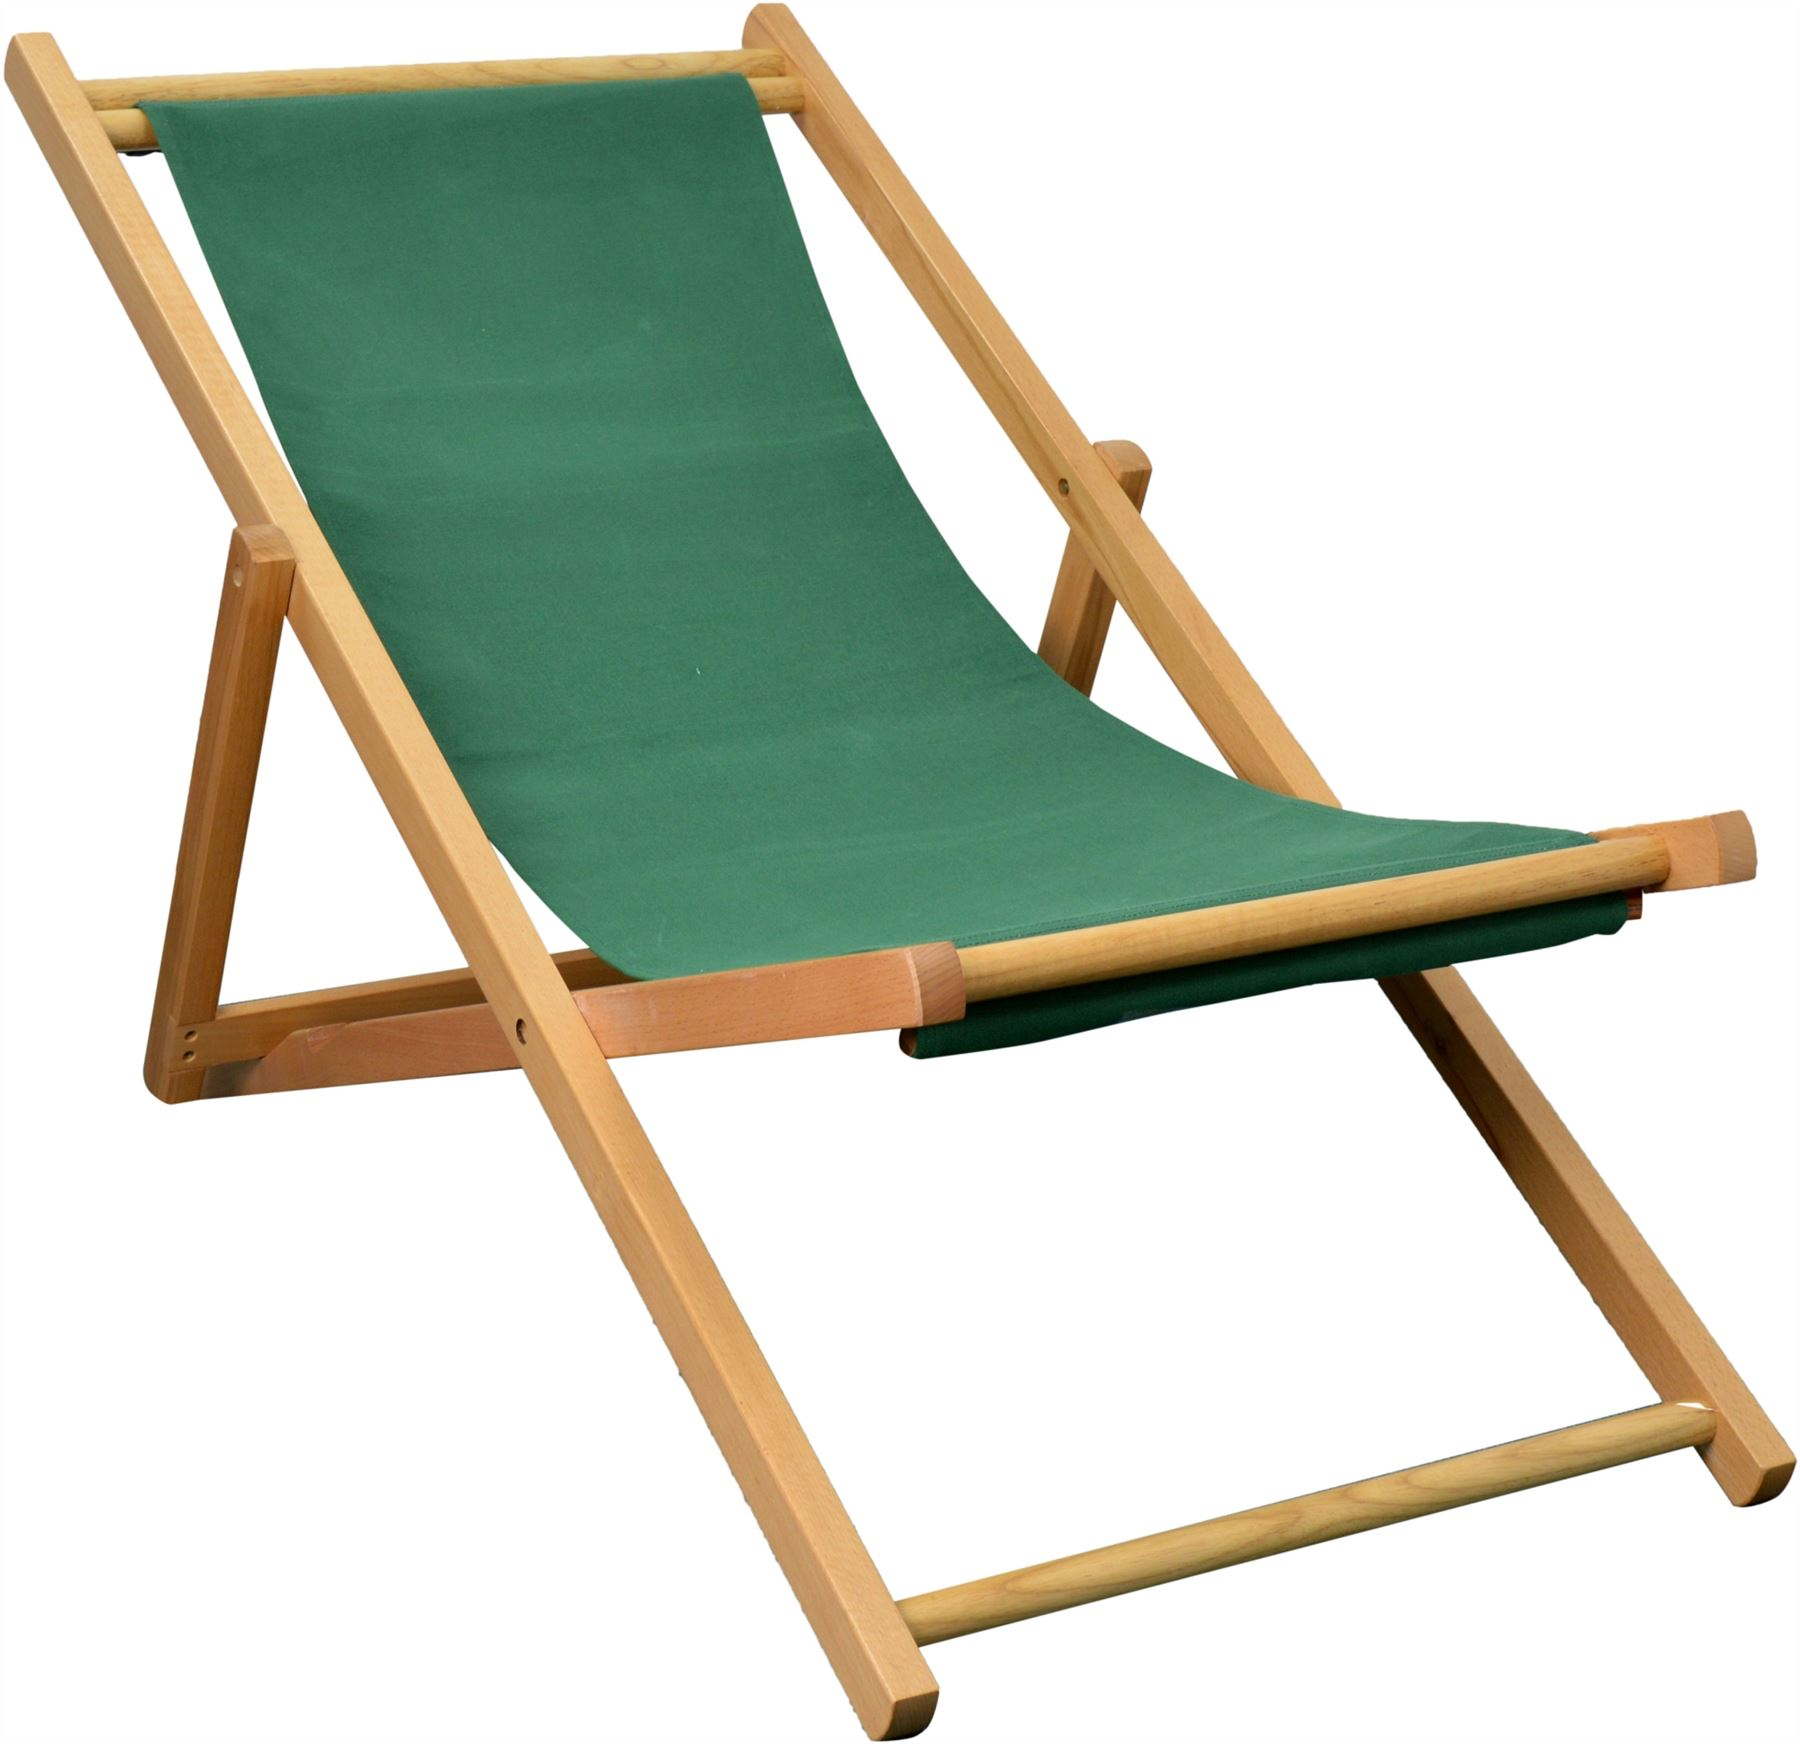 Folding Wood Beach Chair Traditional Folding Wooden Deckchair Garden Beach Seaside